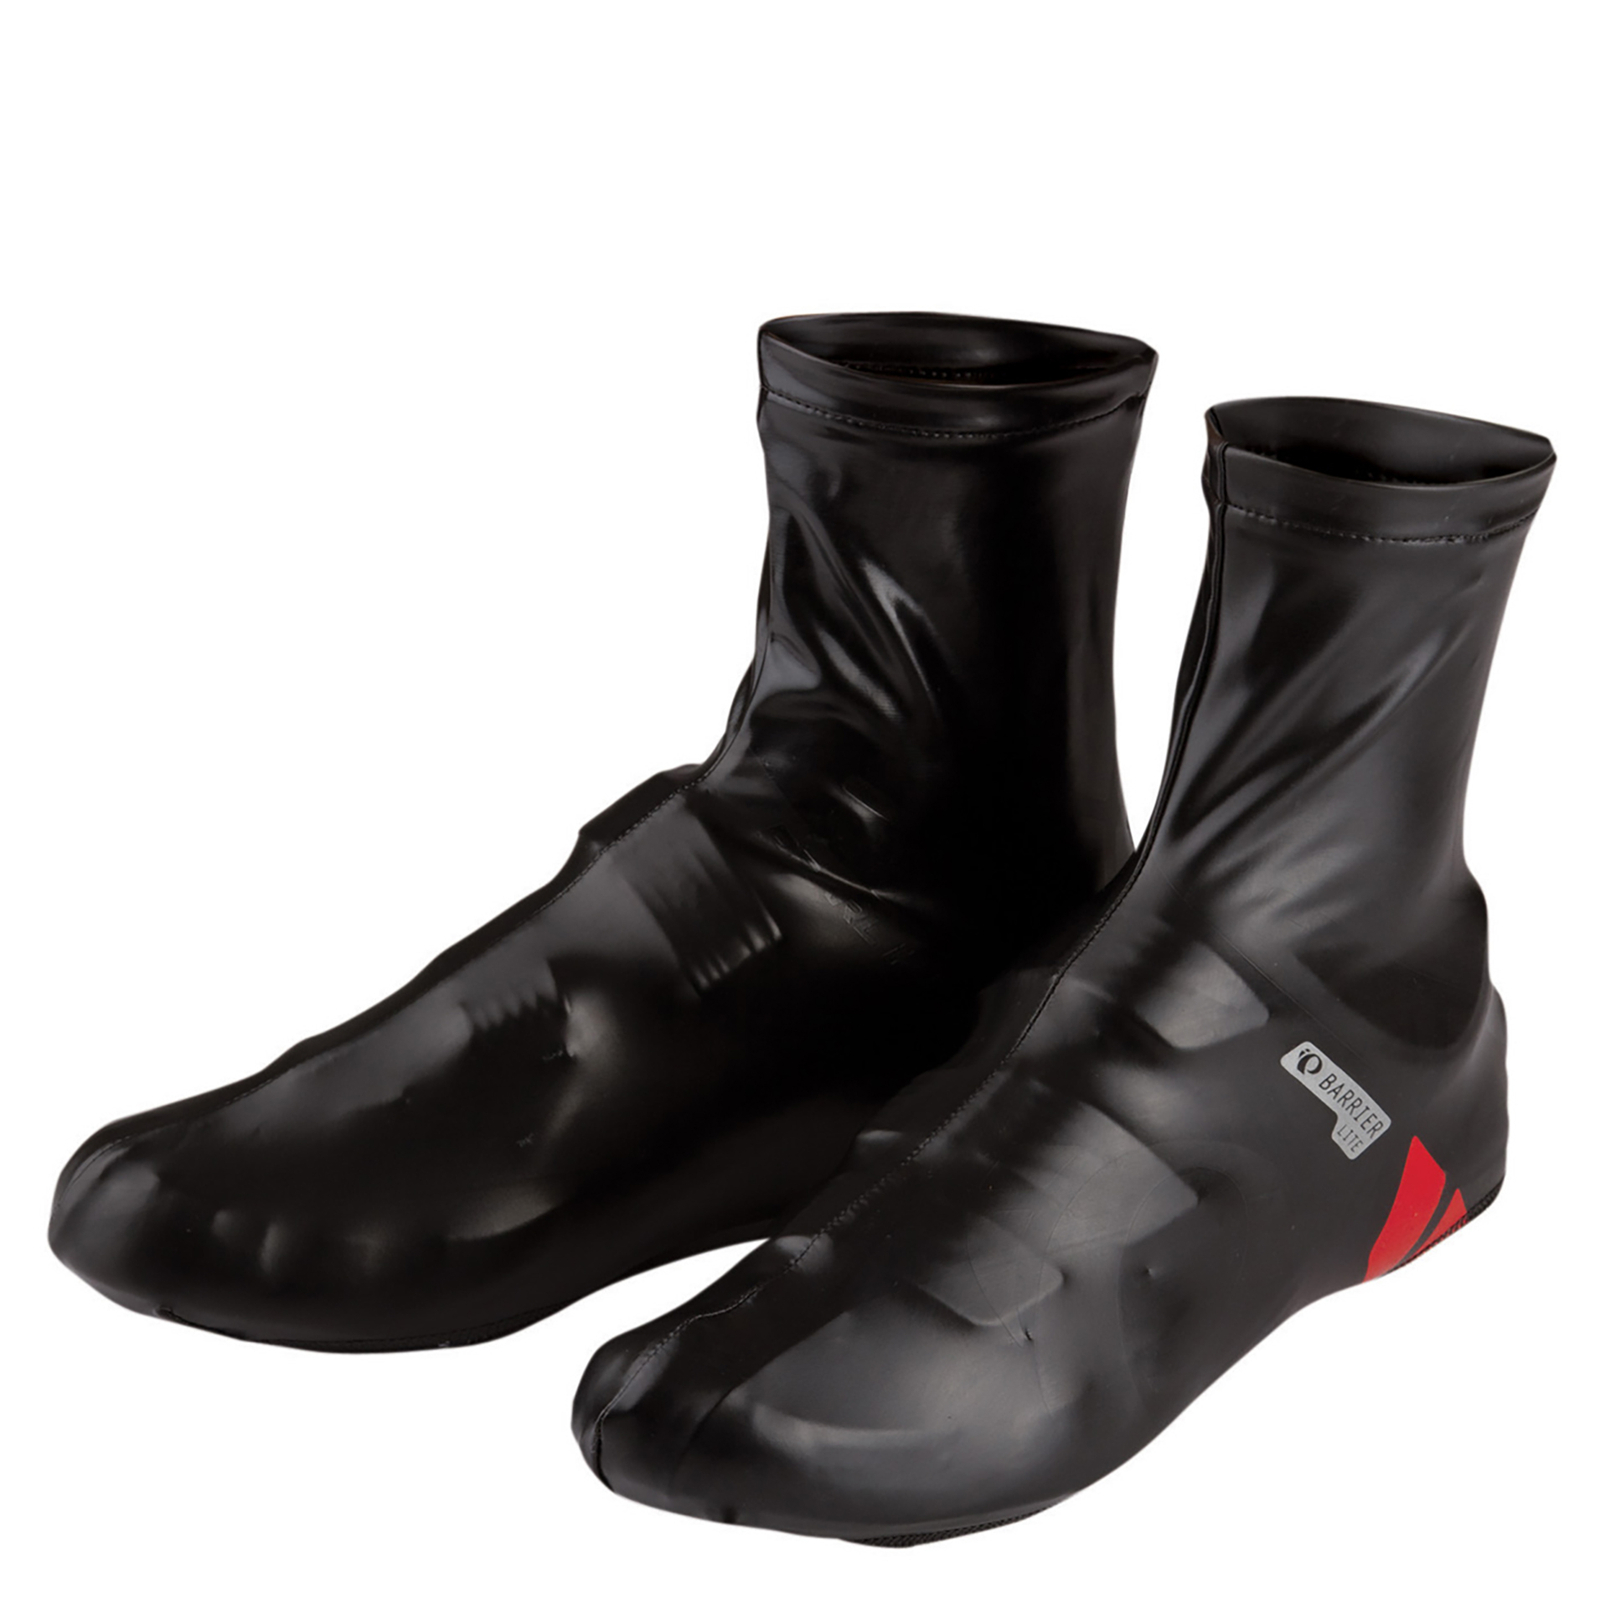 Pearl Izumi PRO Barrier Lite Shoe Covers - Black